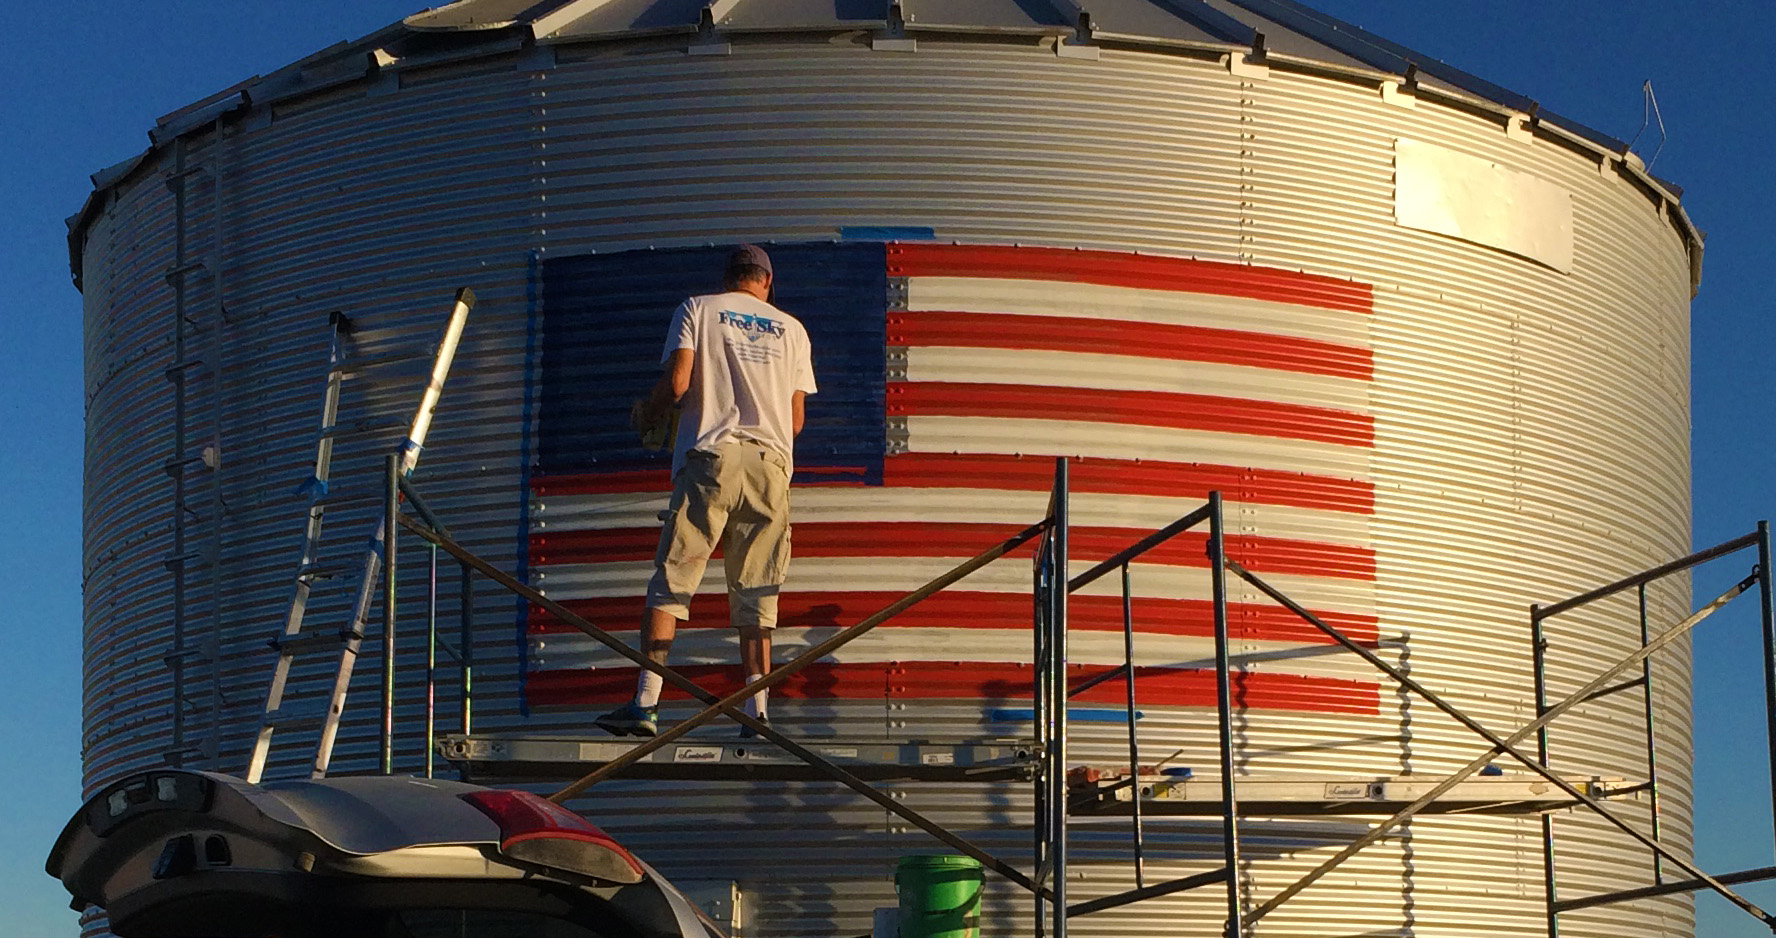 american flag painting on grain bin